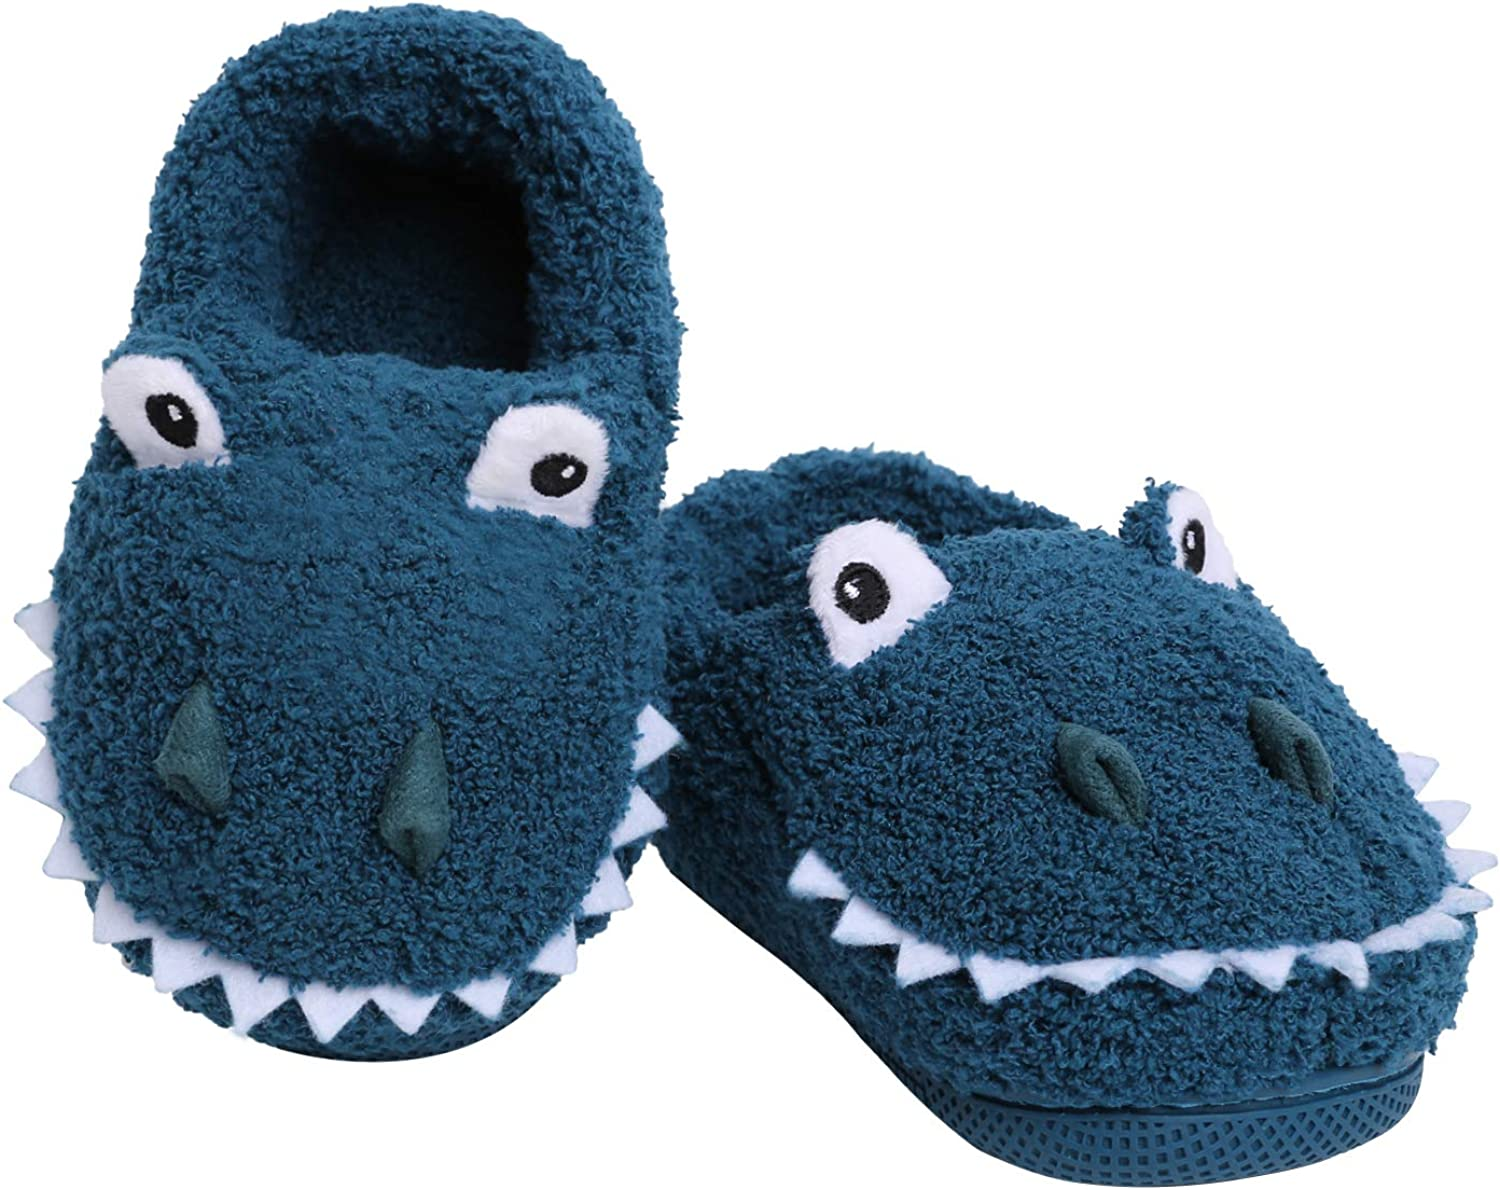 Yinbwol Girls lowest price Boys Home Slippers Dinosaur House Free shipping anywhere in the nation Cute Warm Slippe